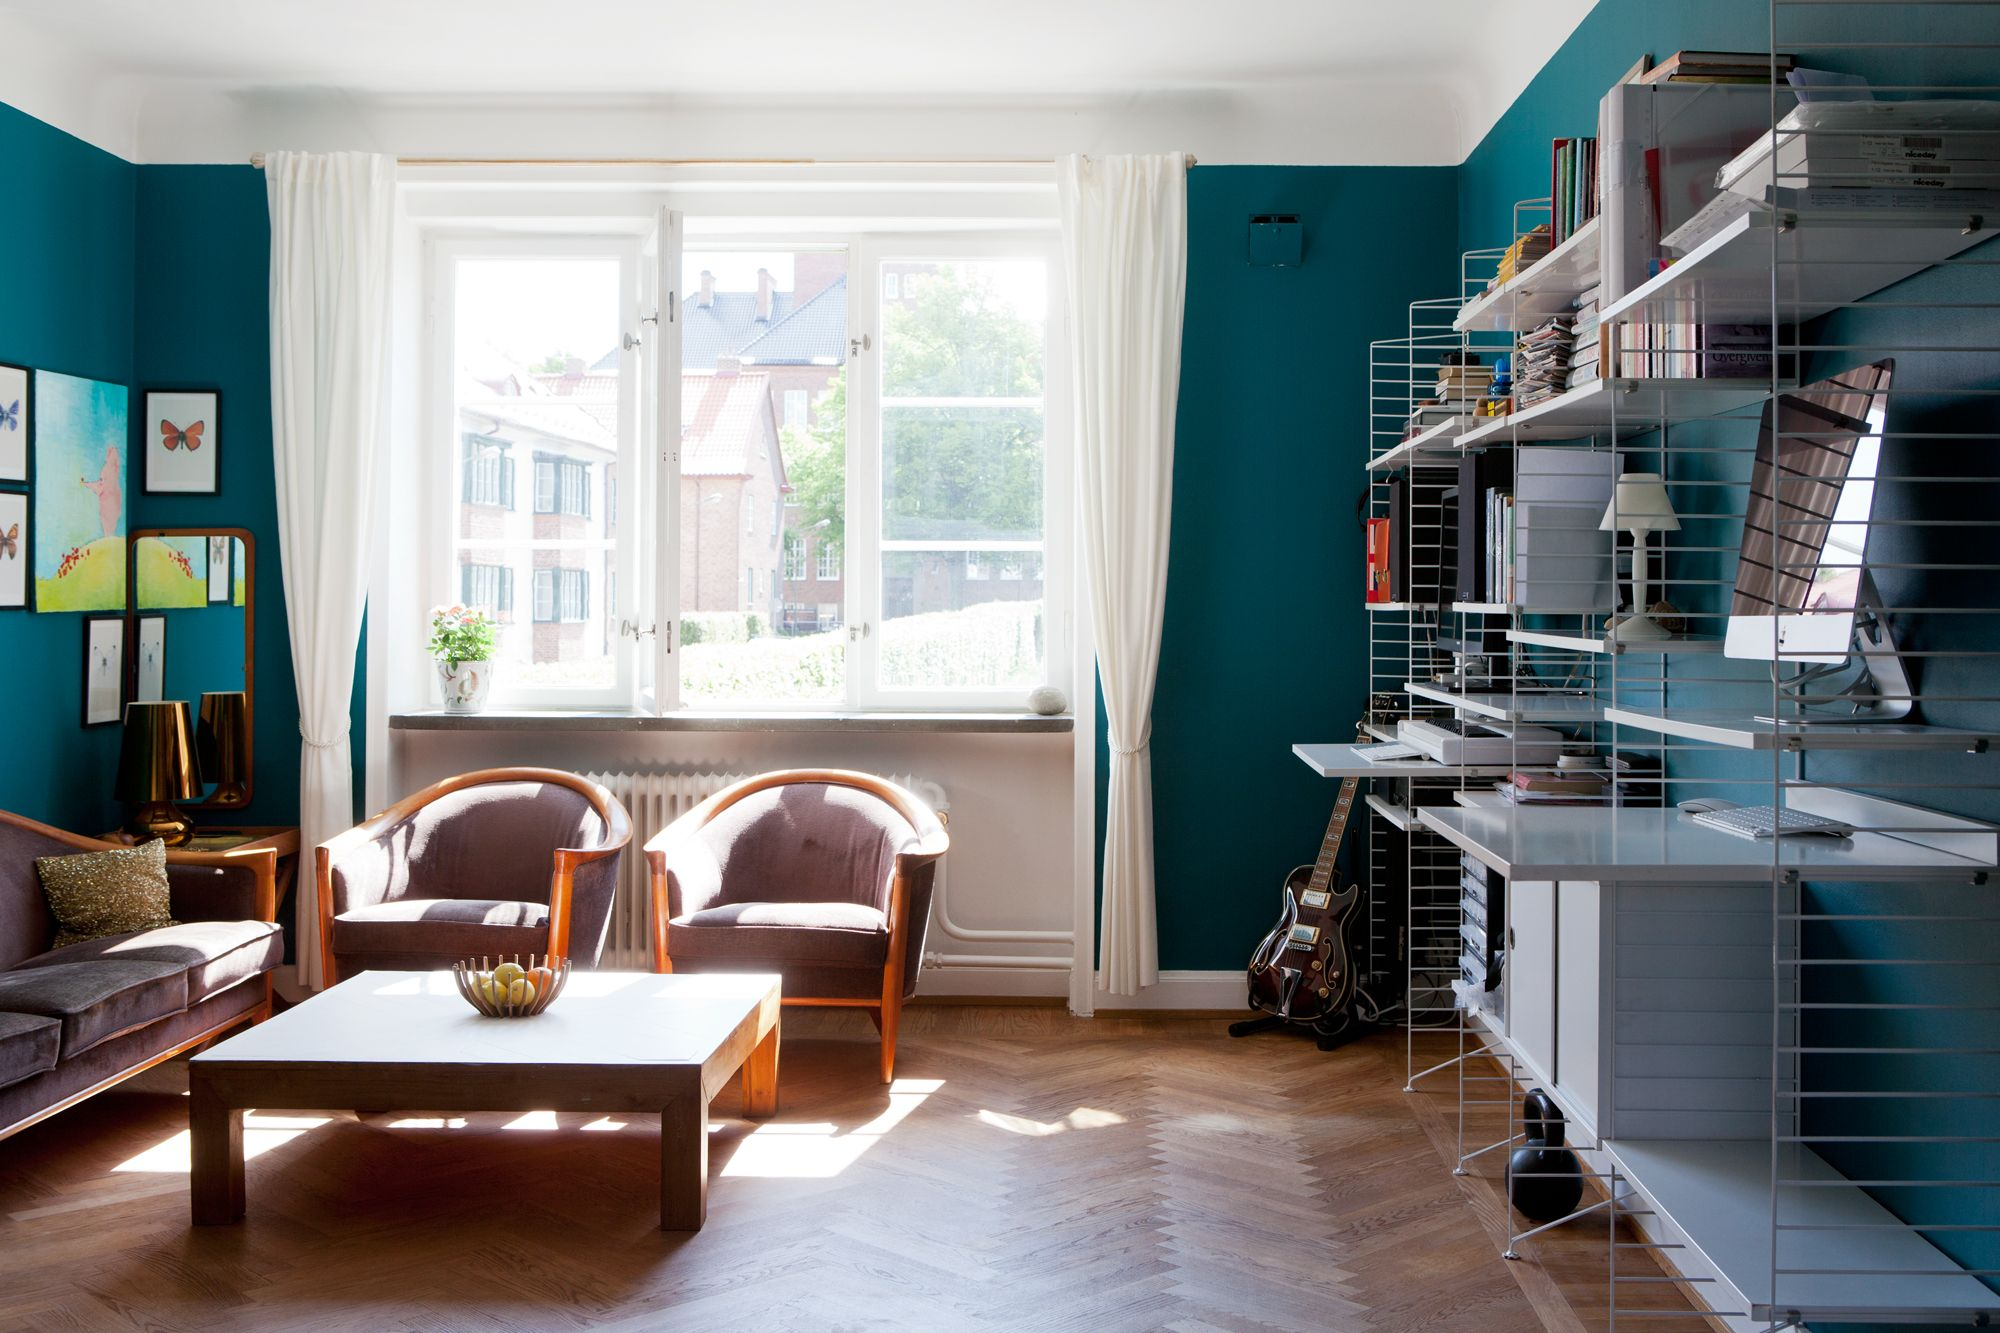 Scandinavian Apartment Design Amazing Wall Color Dark Turquoise Wall Paint Turquoise Walls Wall Color Apartment Design #turquoise #wall #living #room